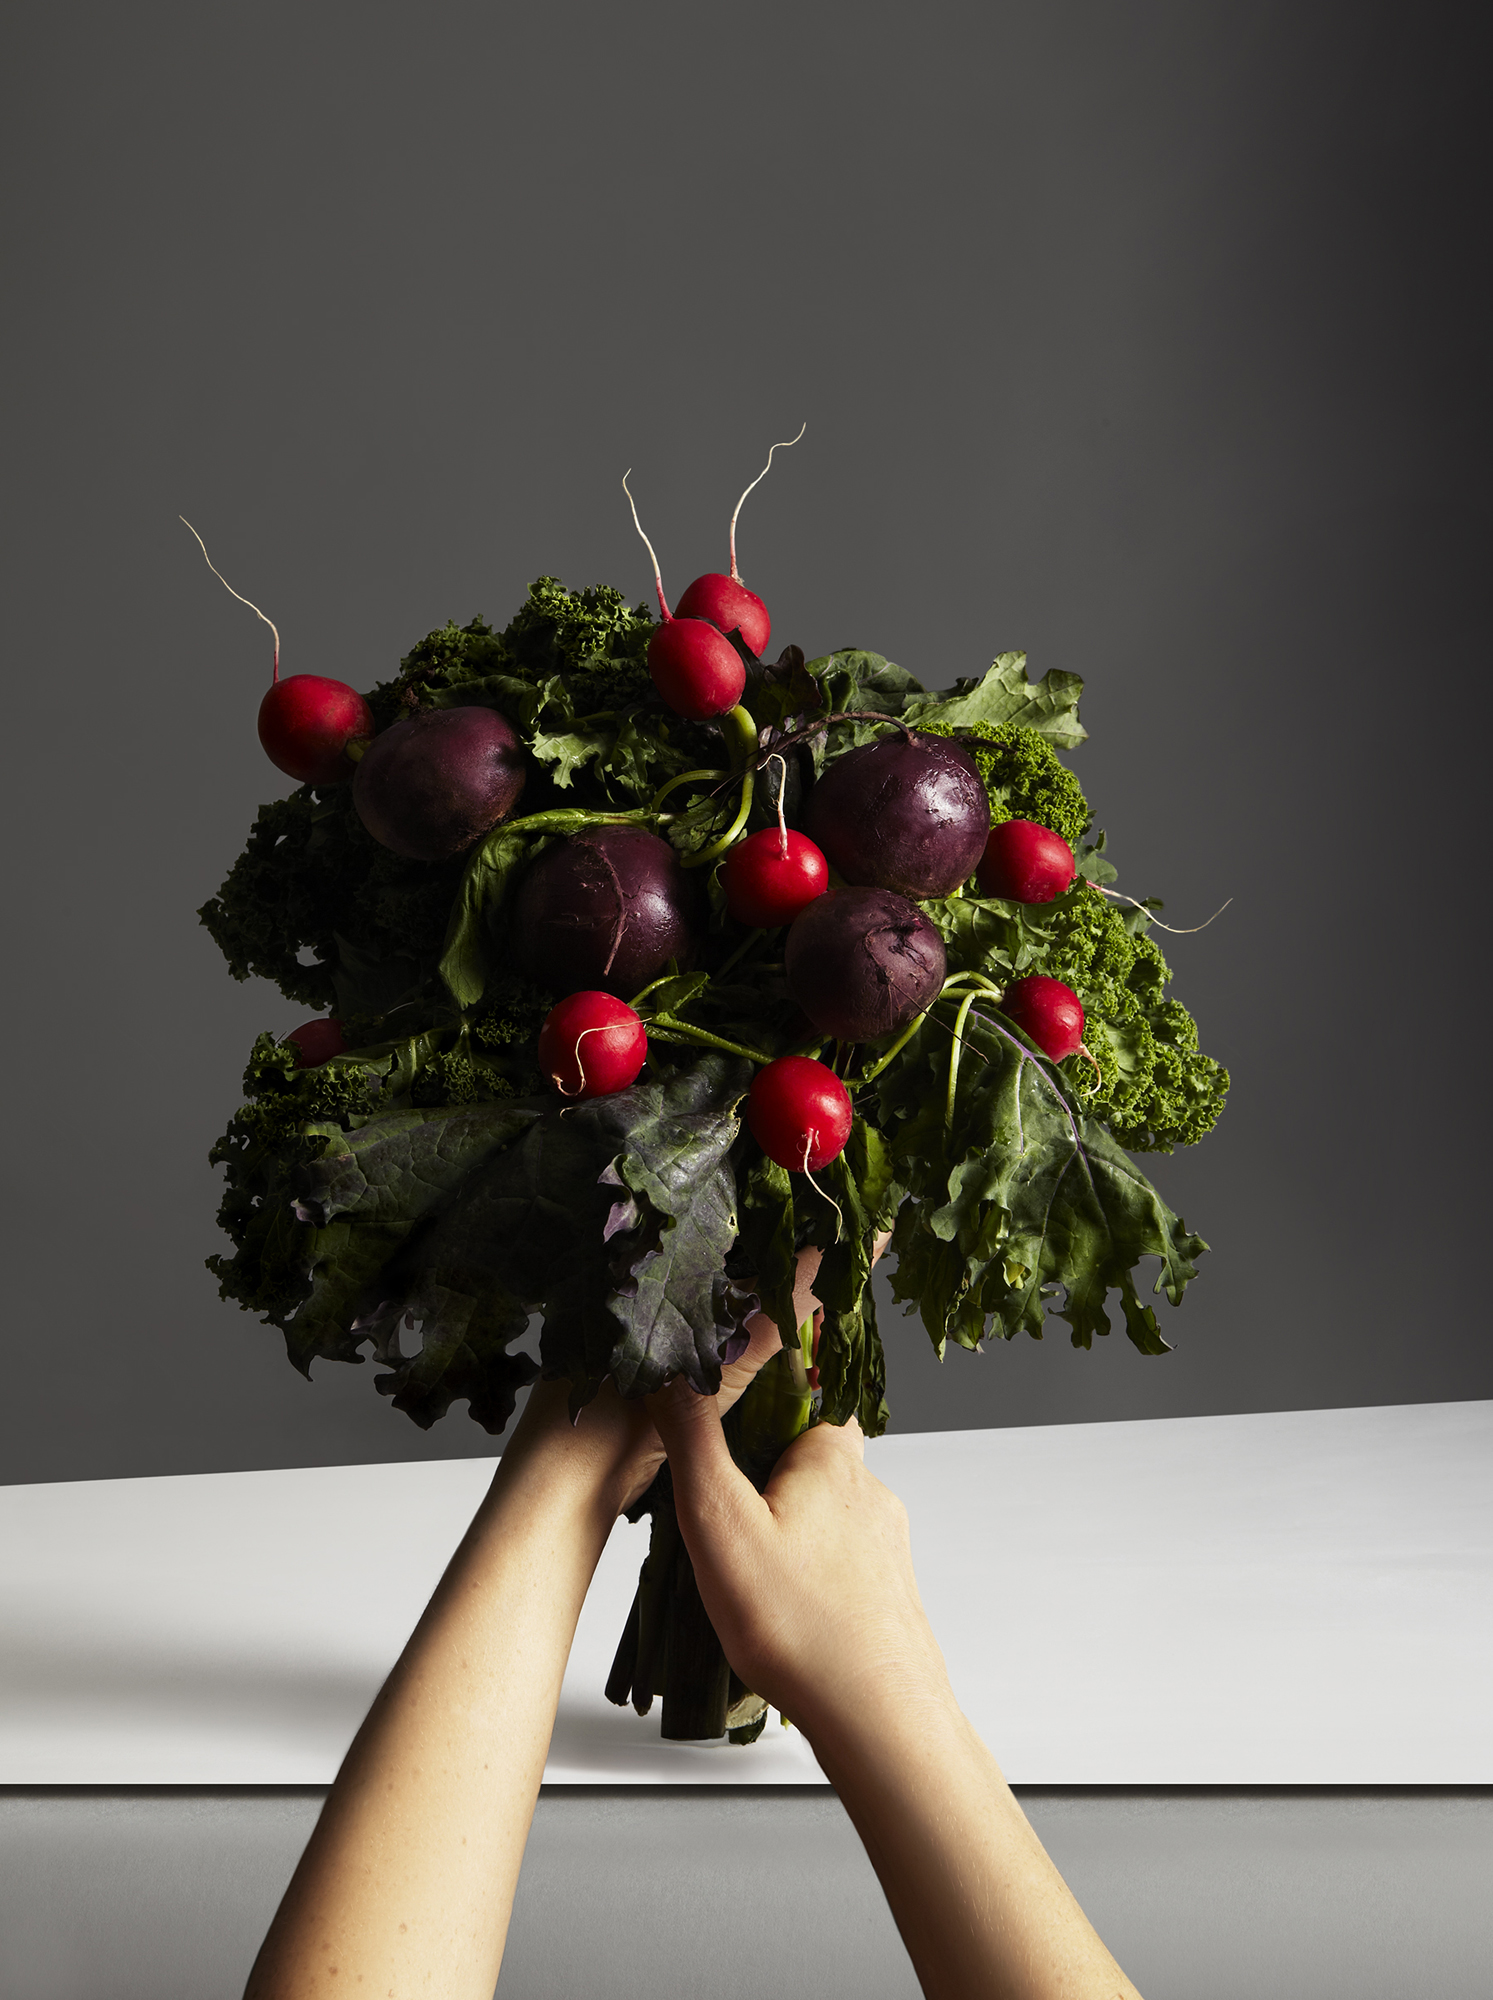 katie hammond love veg red roses still life food photography